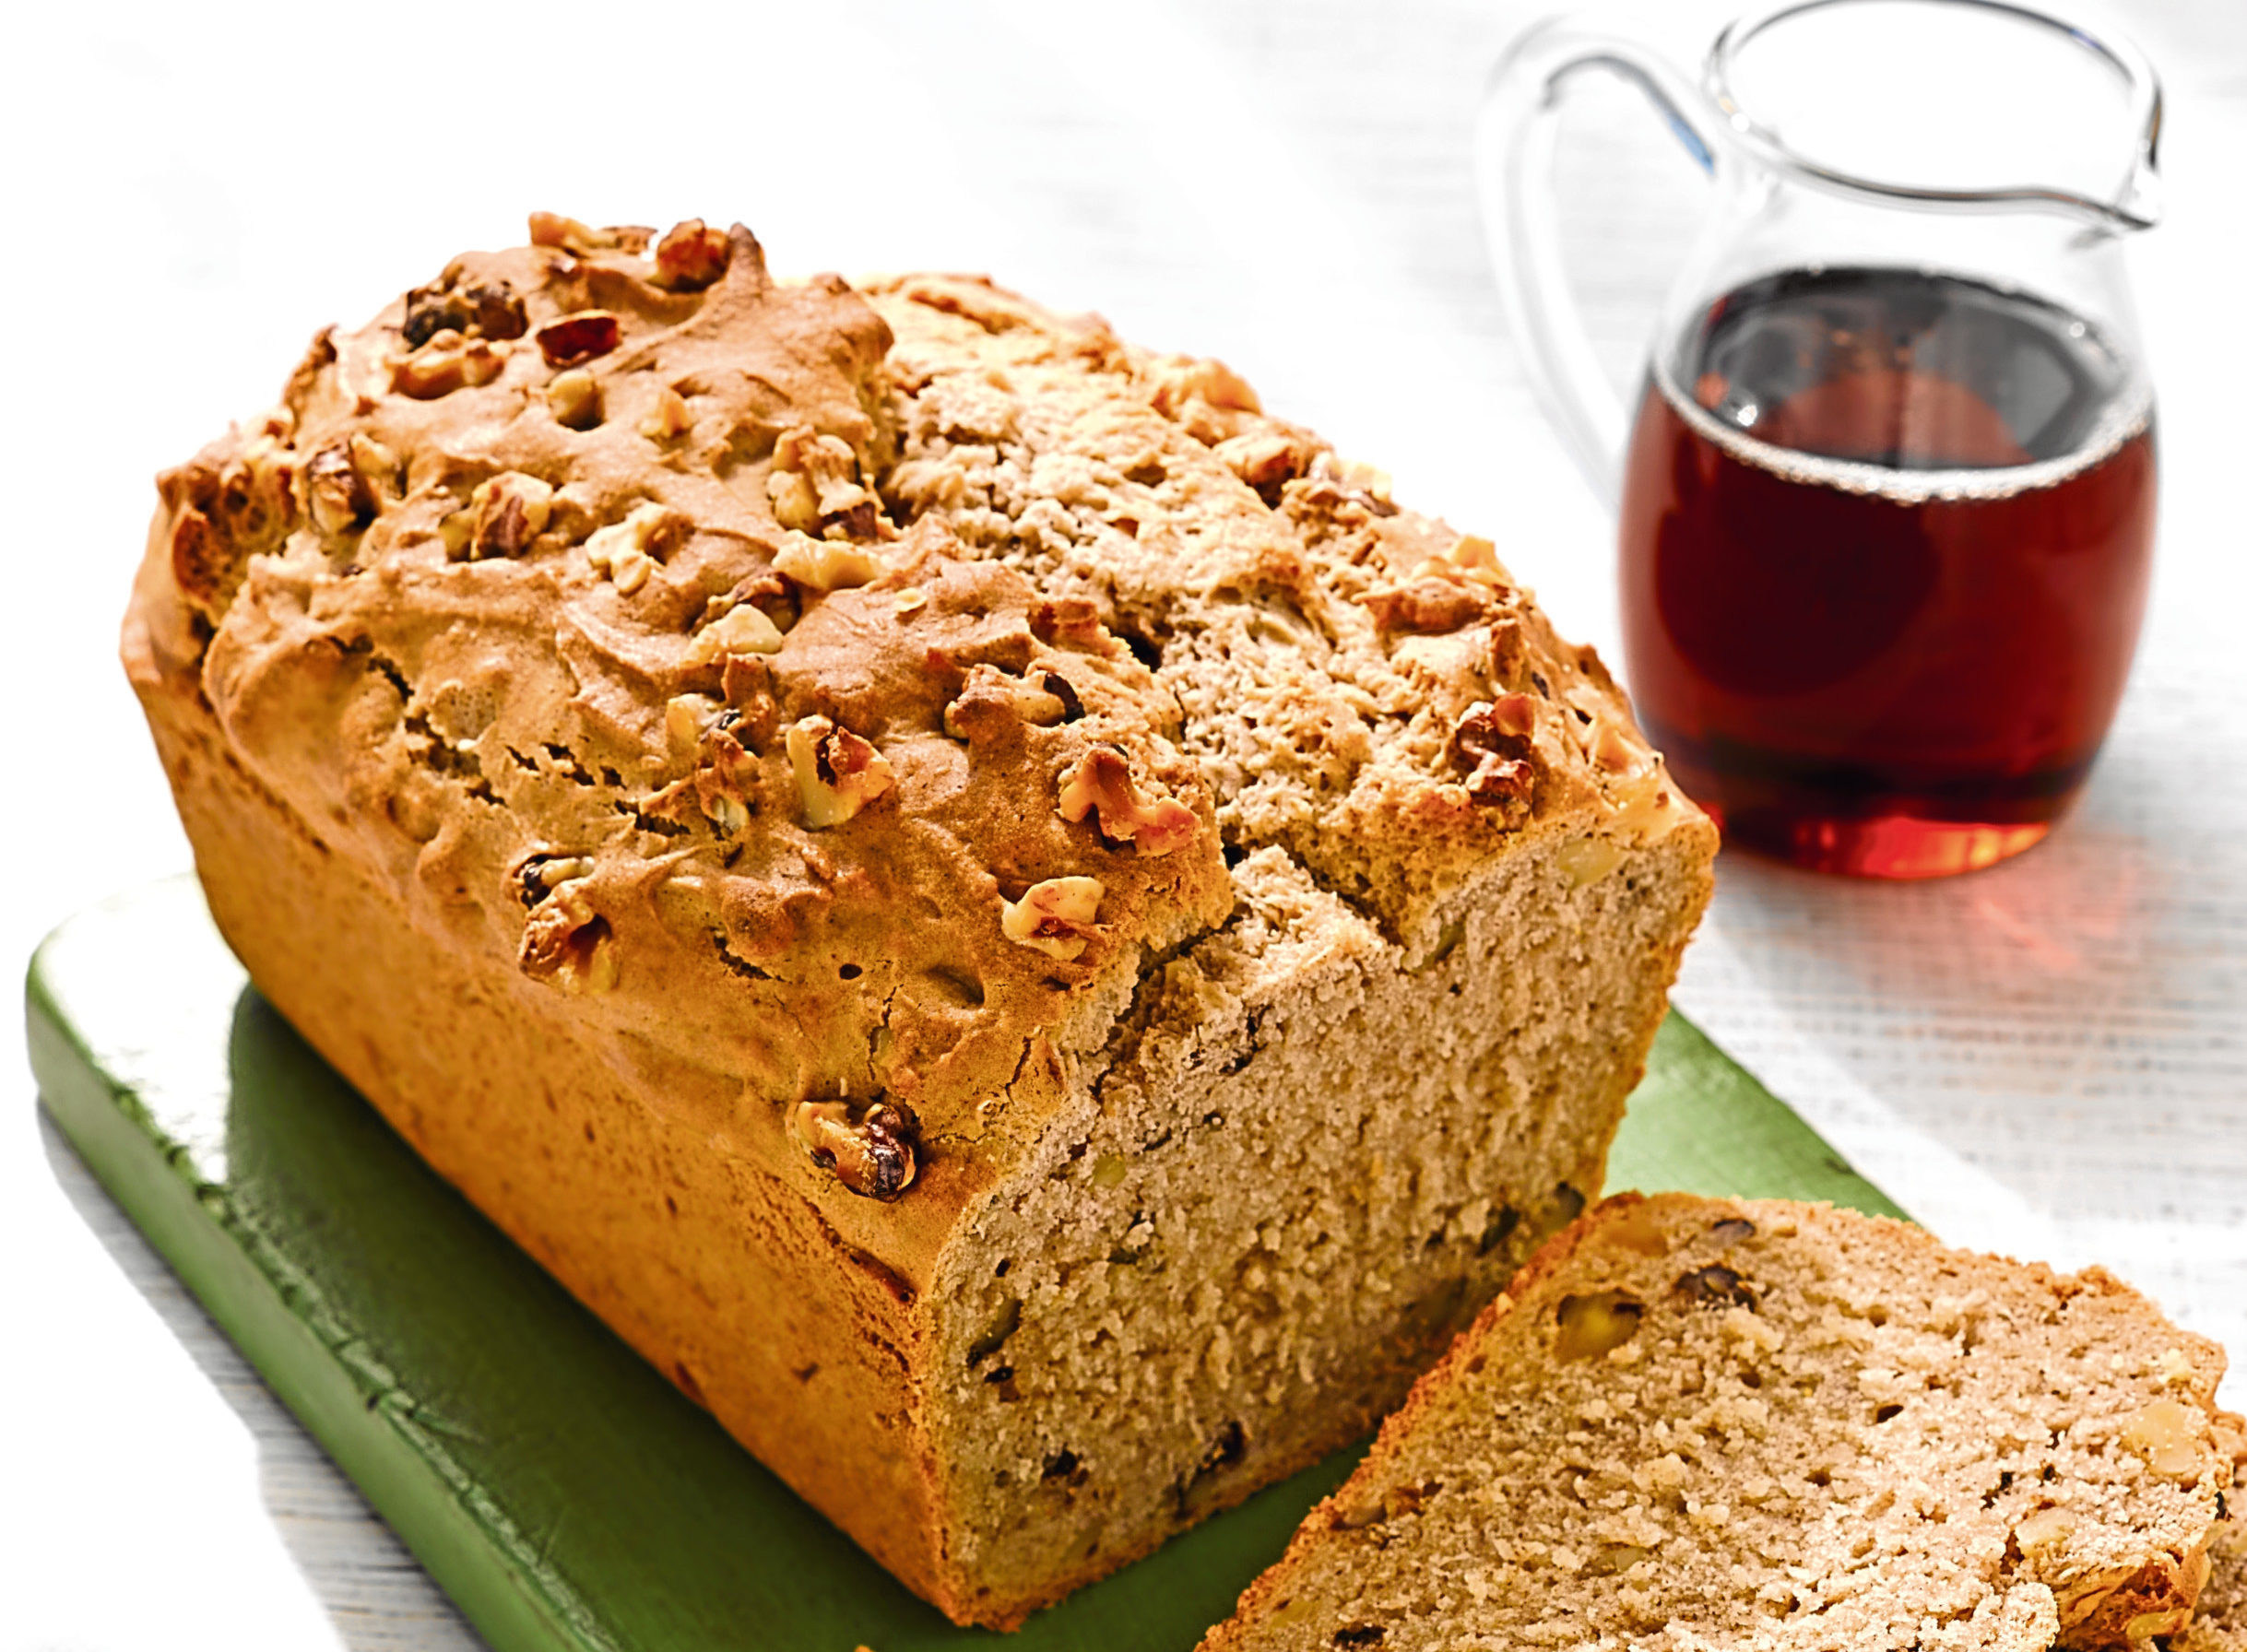 Meals For Under 10 Maple Walnut Bread Sunday Post